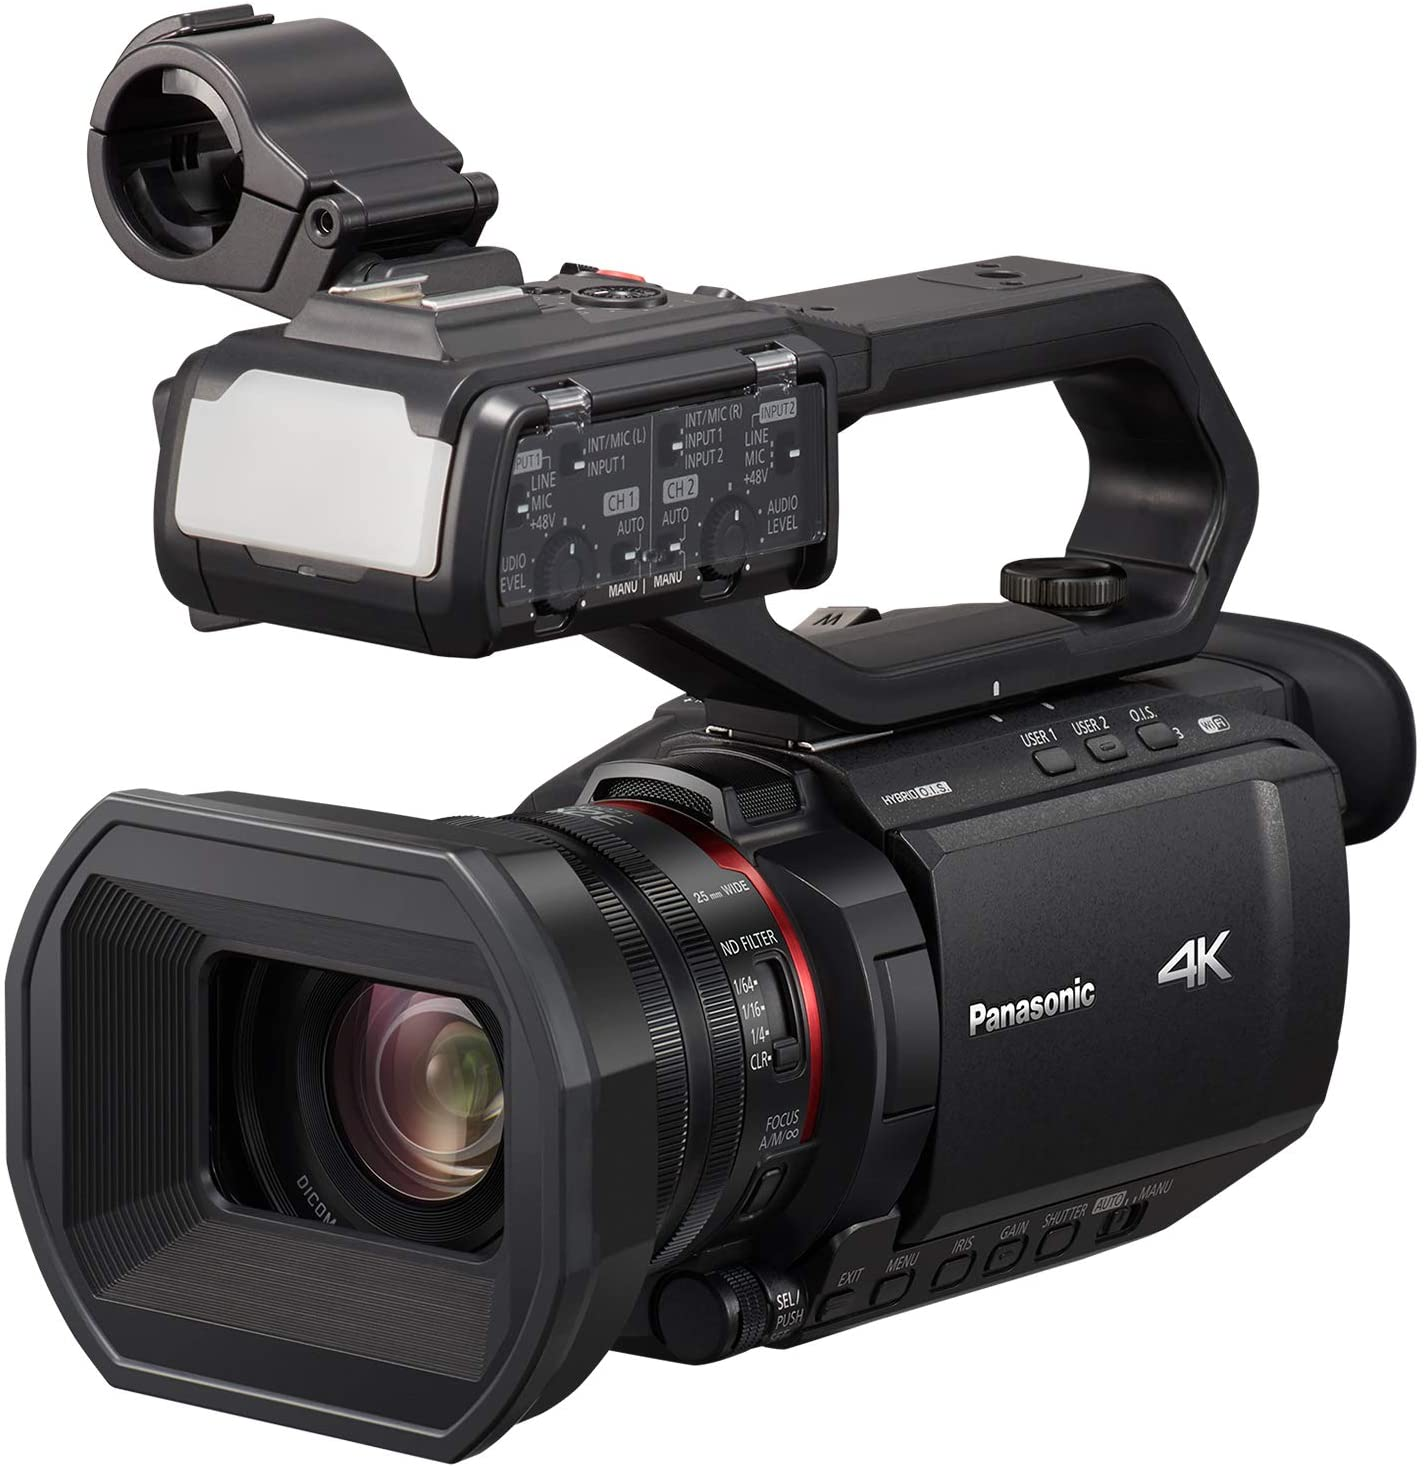 Amazon Opens Pre-Orders For Panasonic X1500 & X2000 4K Professional Camcorders